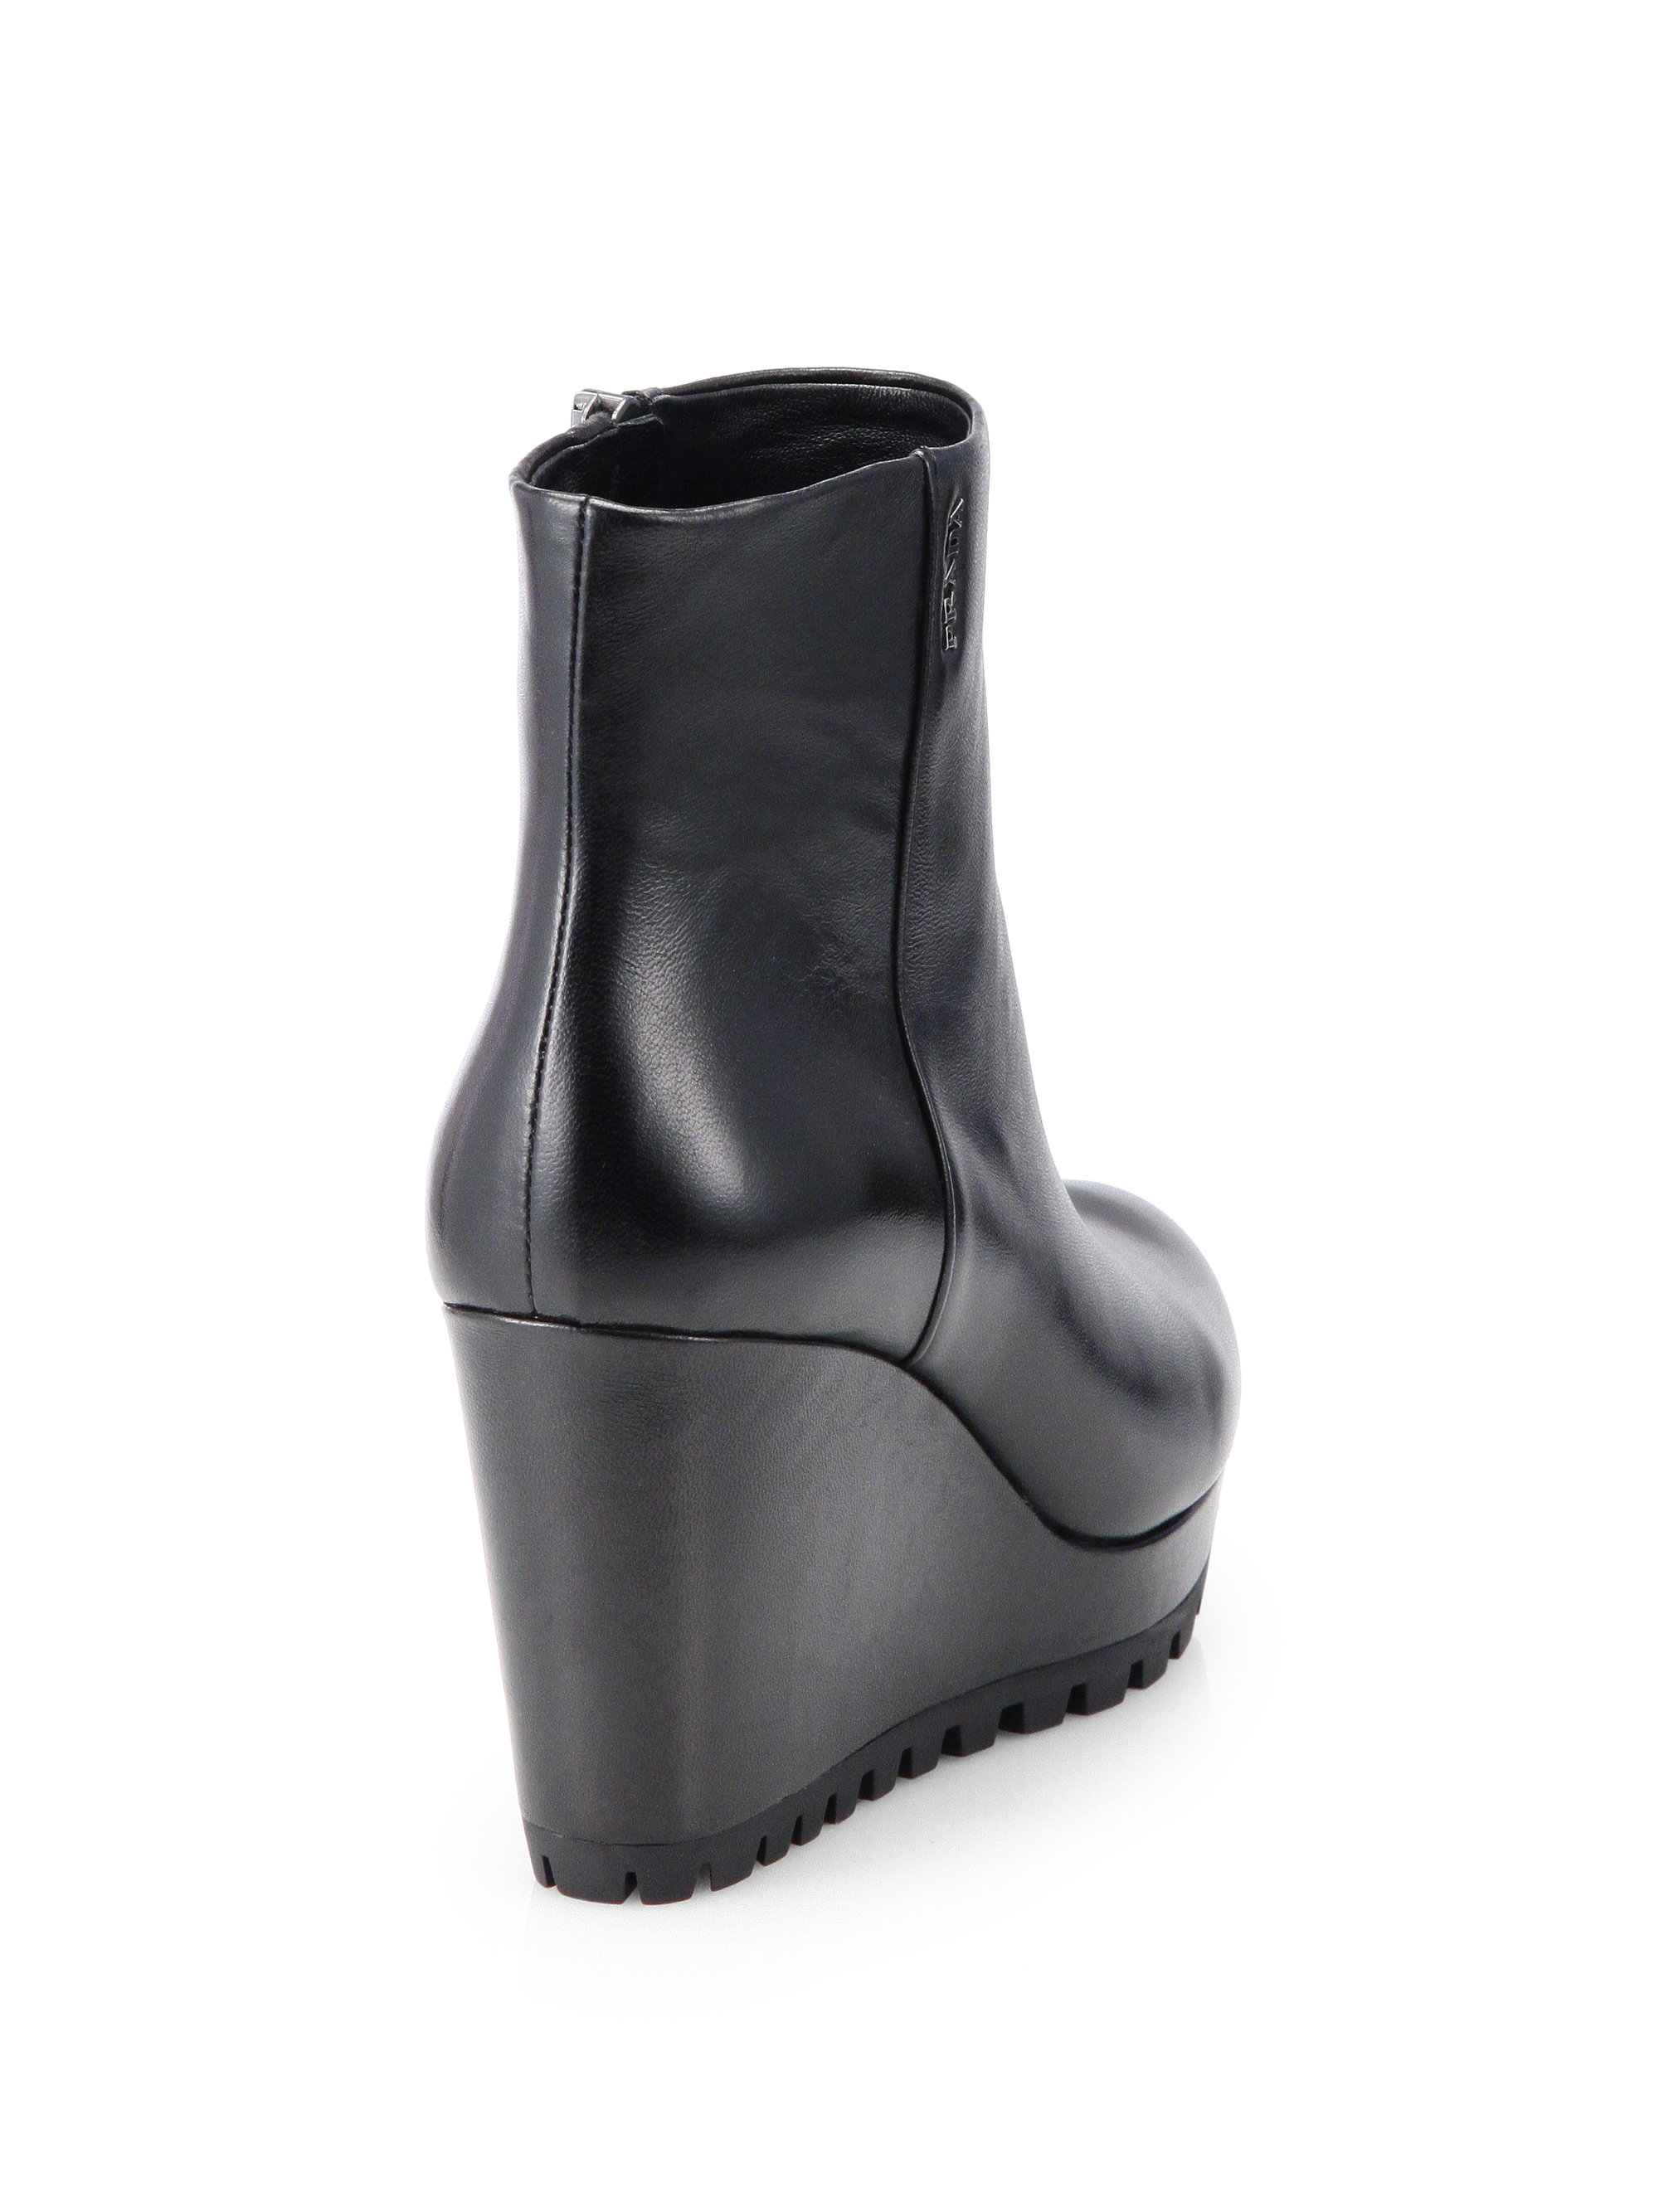 Prada Leather Wedge Ankle Boots in Black | Lyst